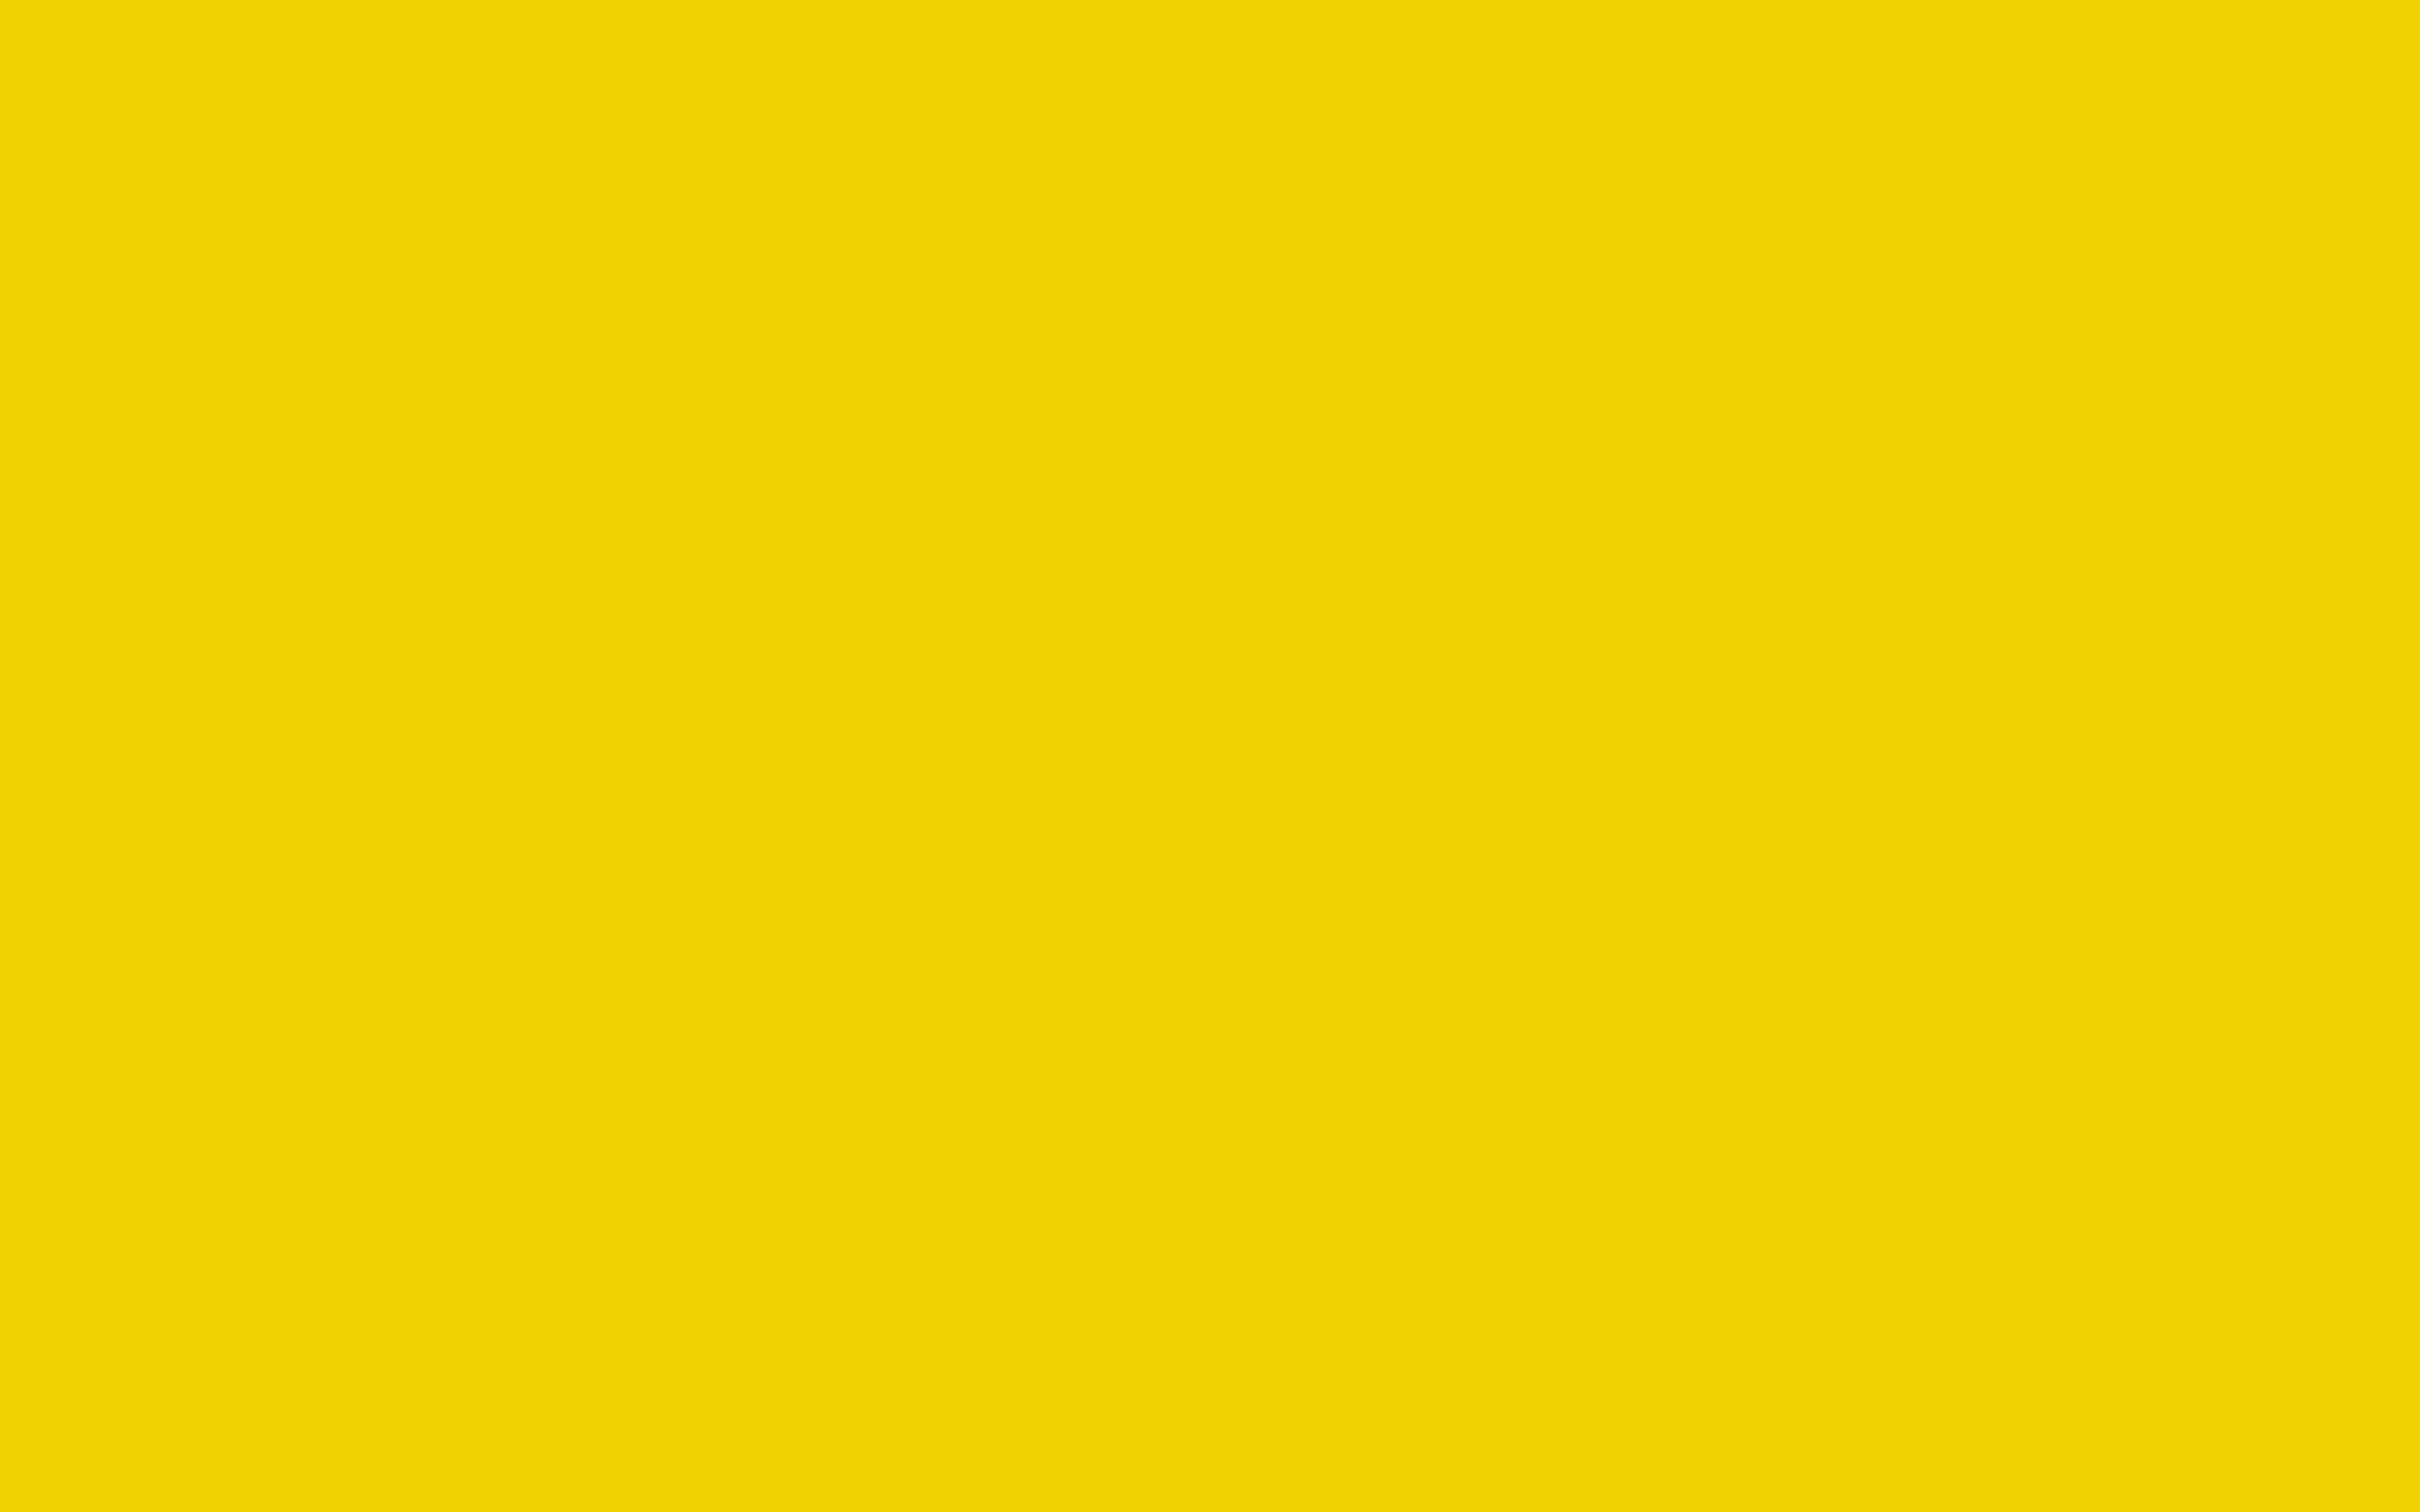 2560x1600 Safety Yellow Solid Color Background